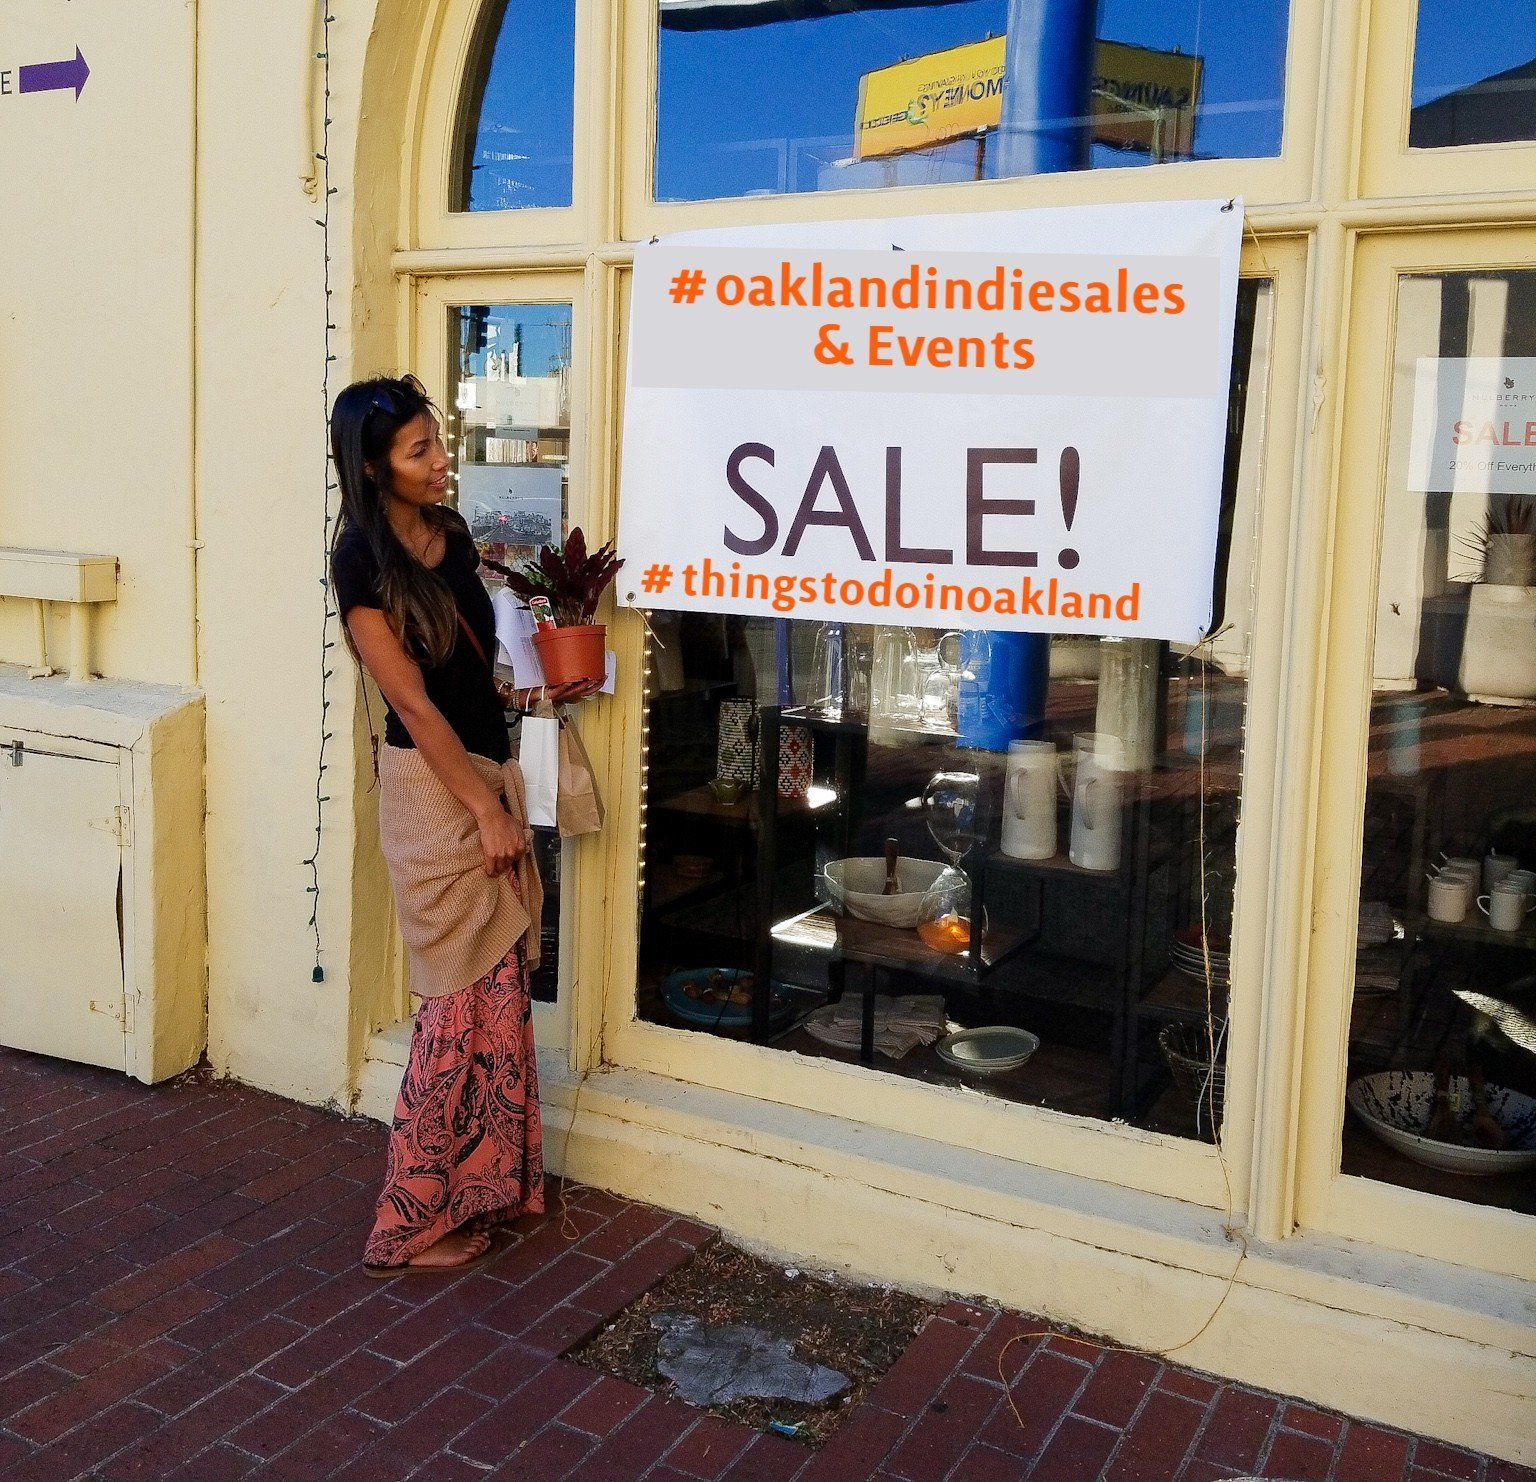 Oakland Indie Sales and Events